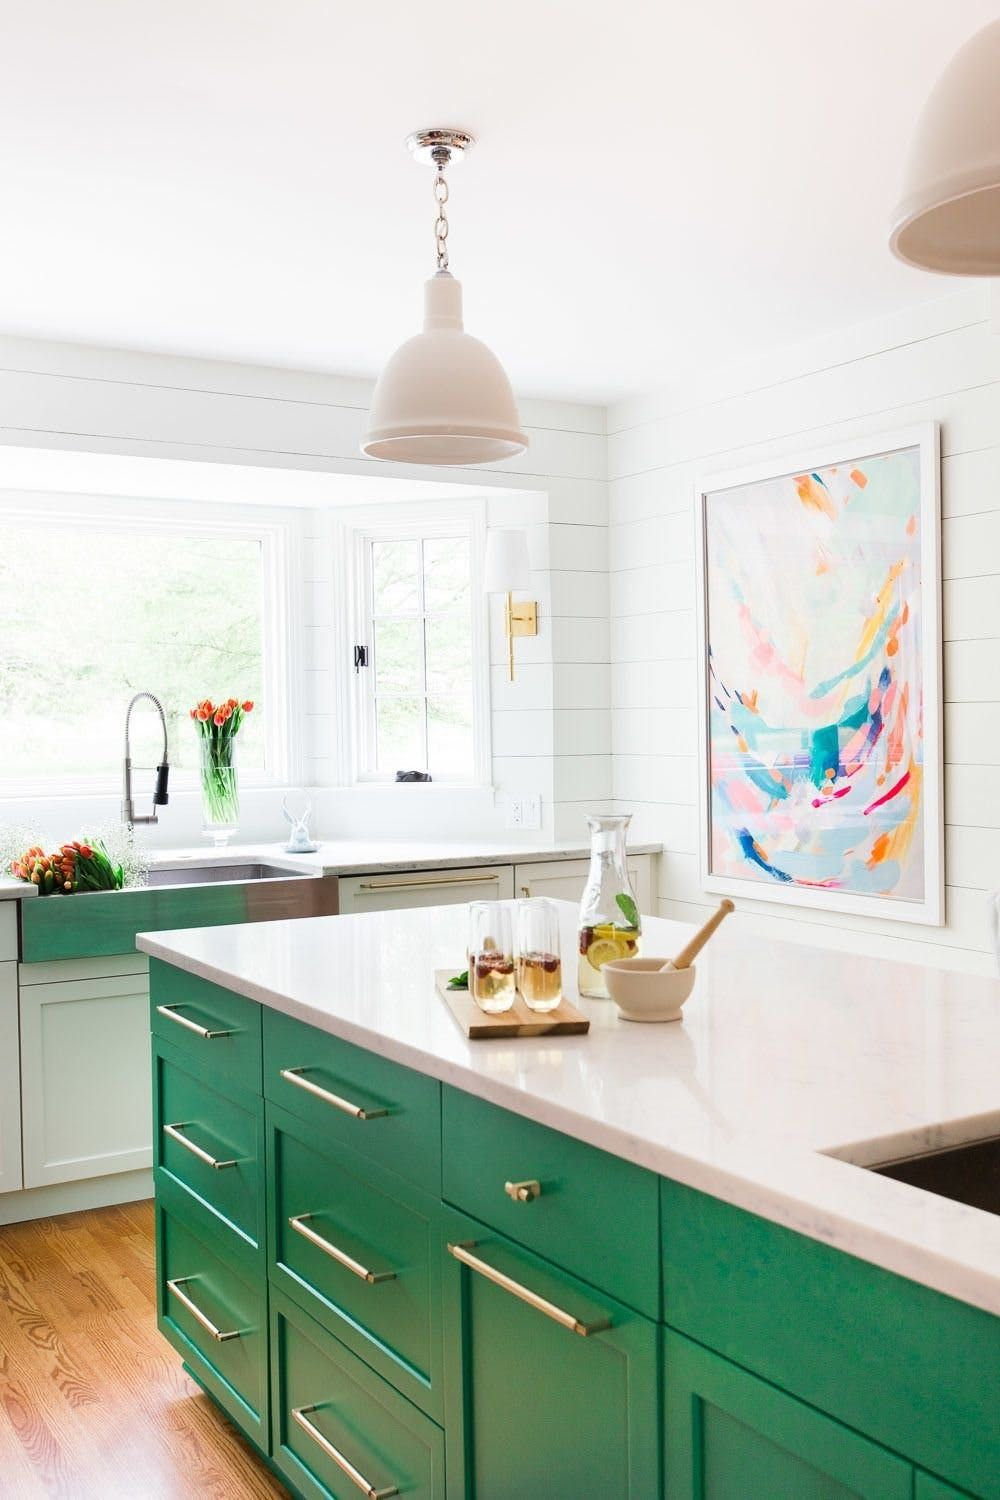 15 Kitchens with Bright Green Cabinets | Kitchens, Kitchen colors ...